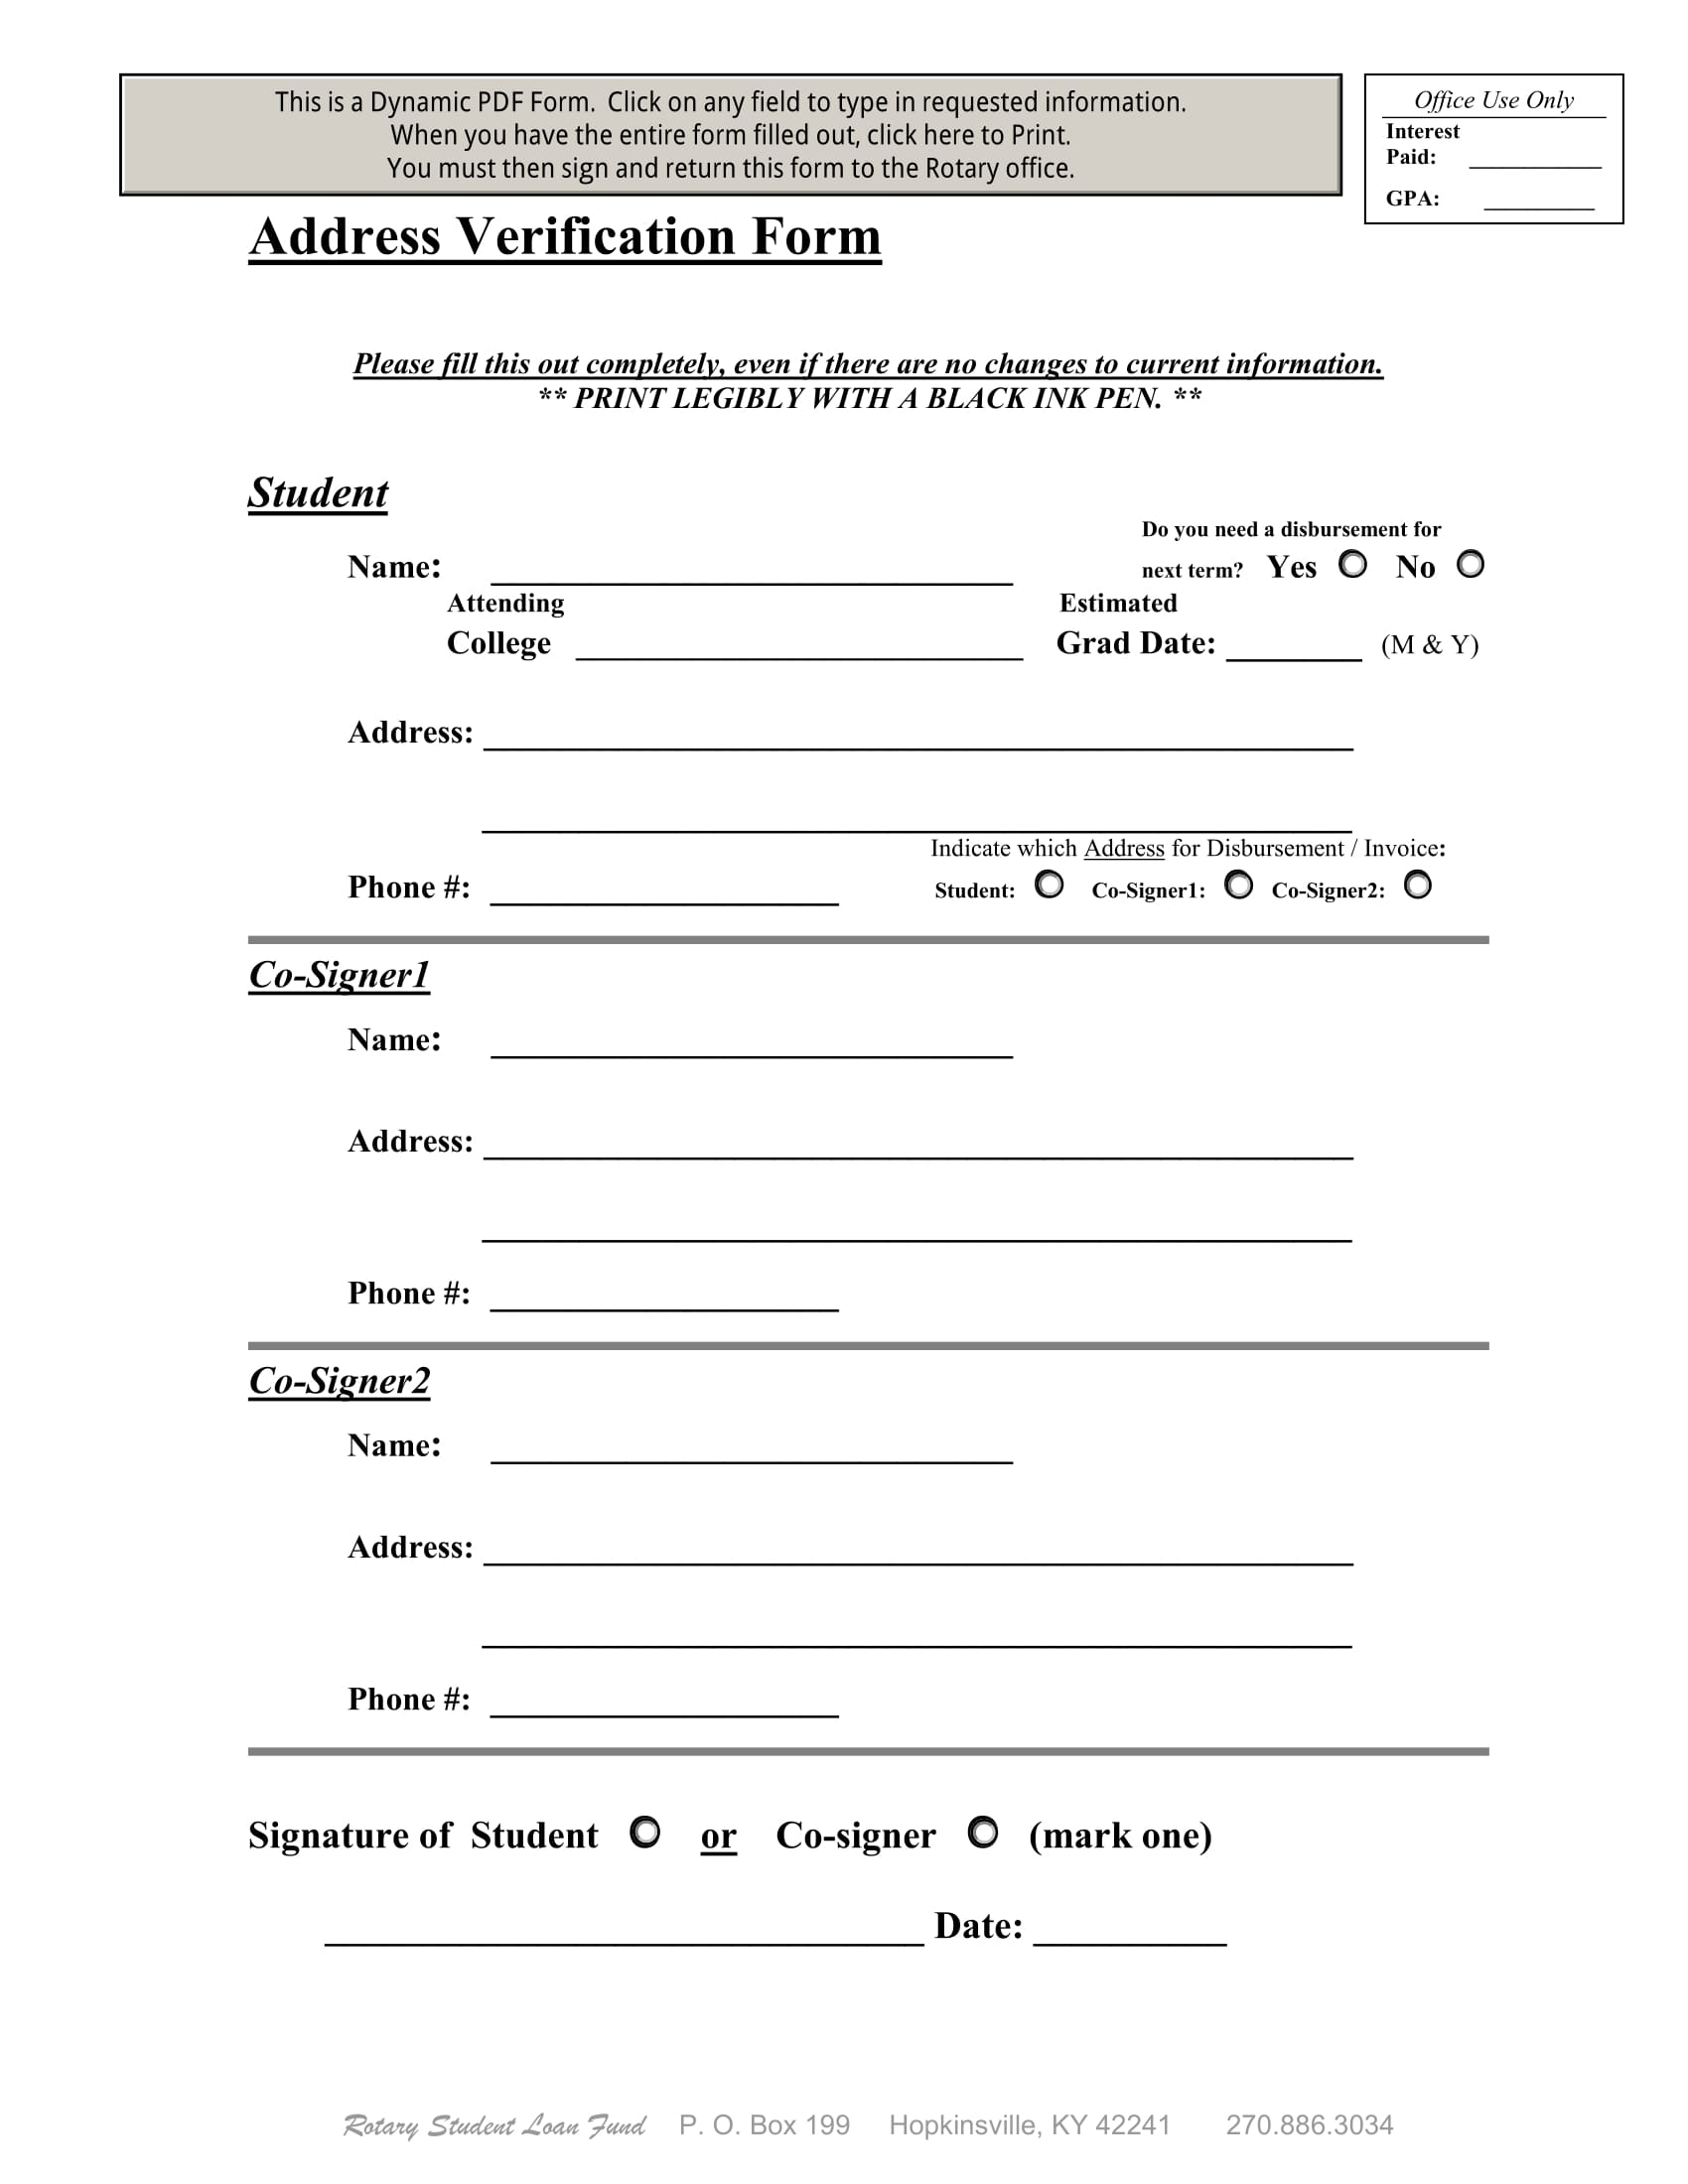 student address verification form 1